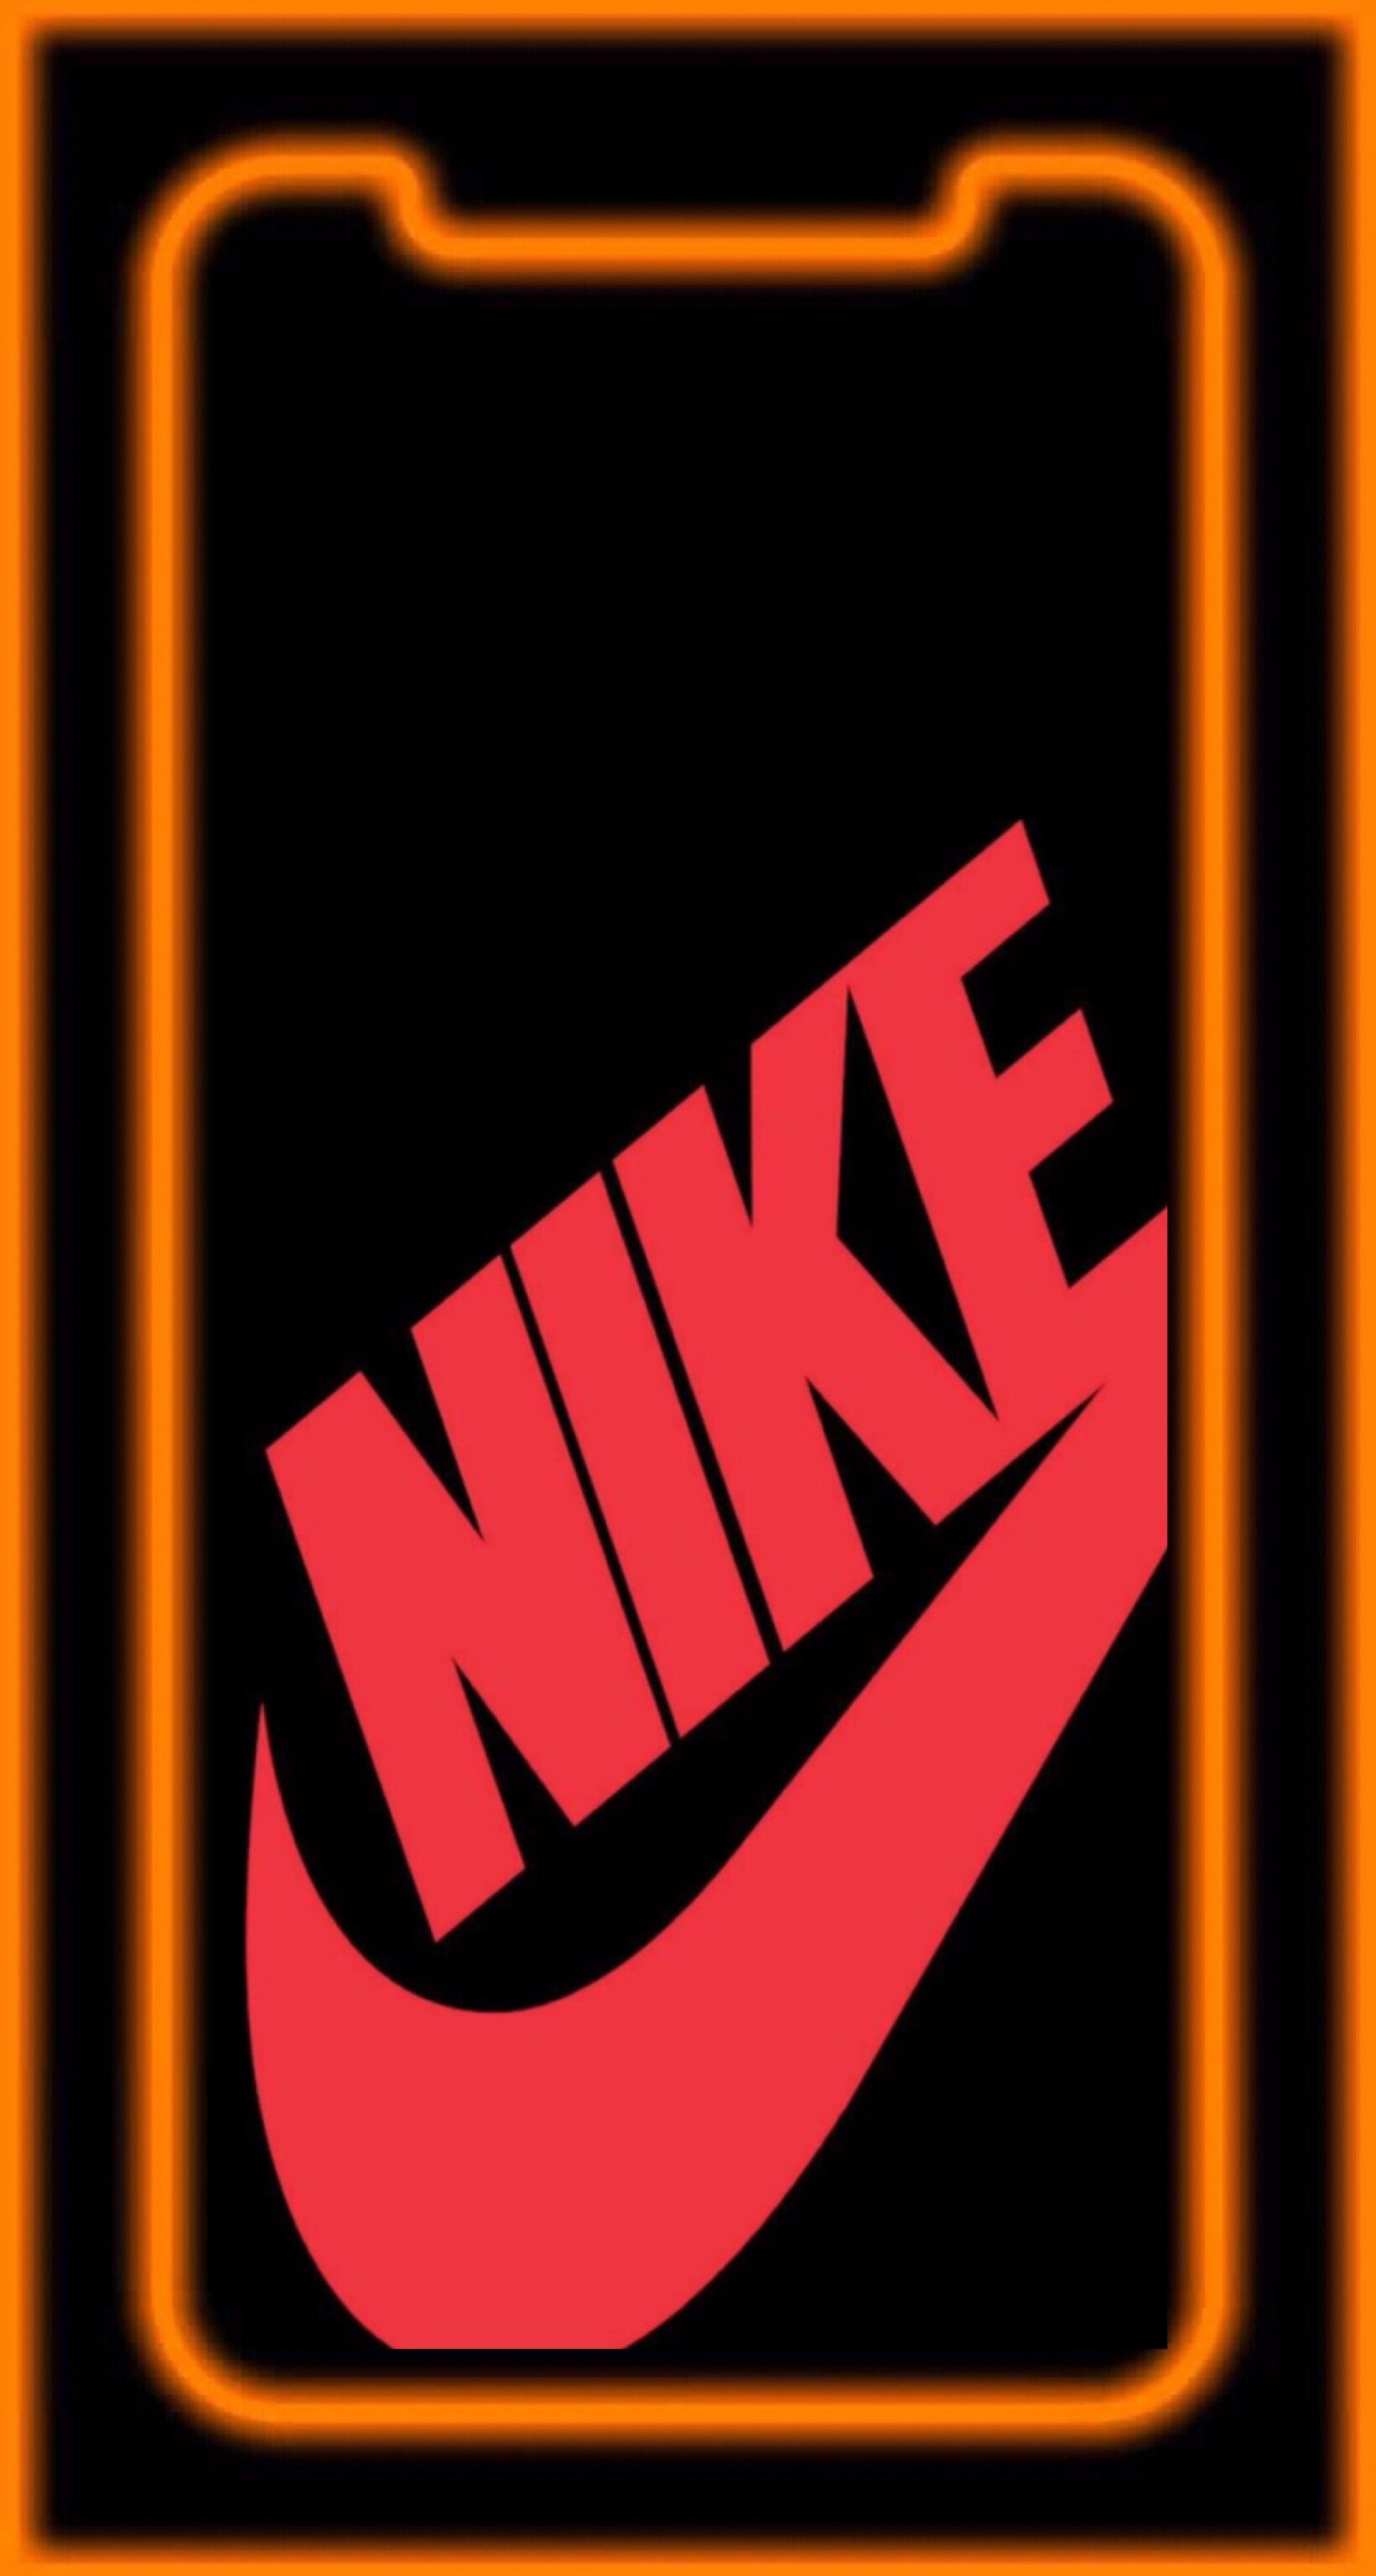 Wallpaper Iphone X Nike Red In 2019 Apple Wallpaper